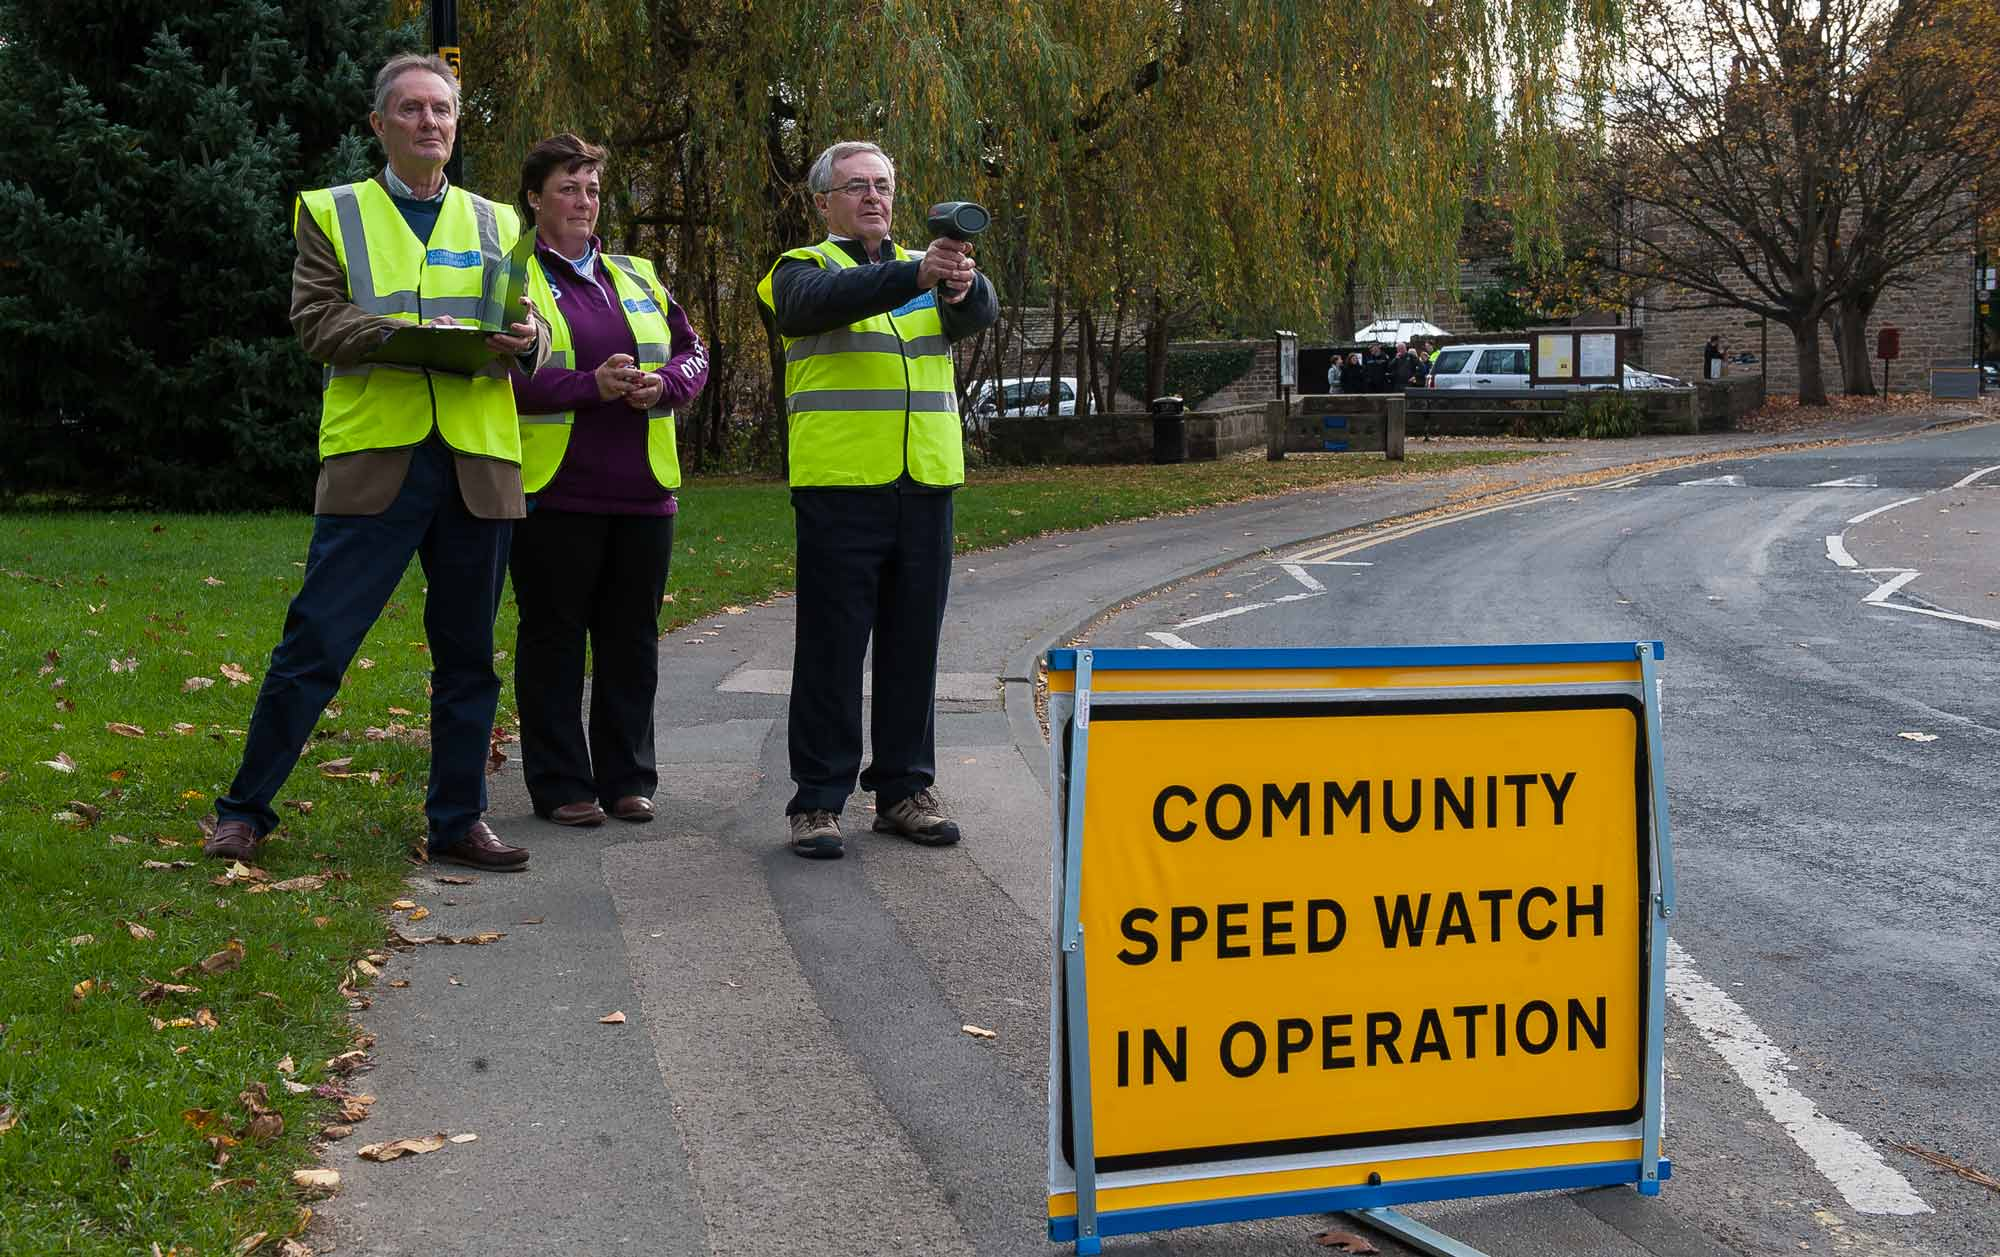 The Pannal Community Speed Watch Team